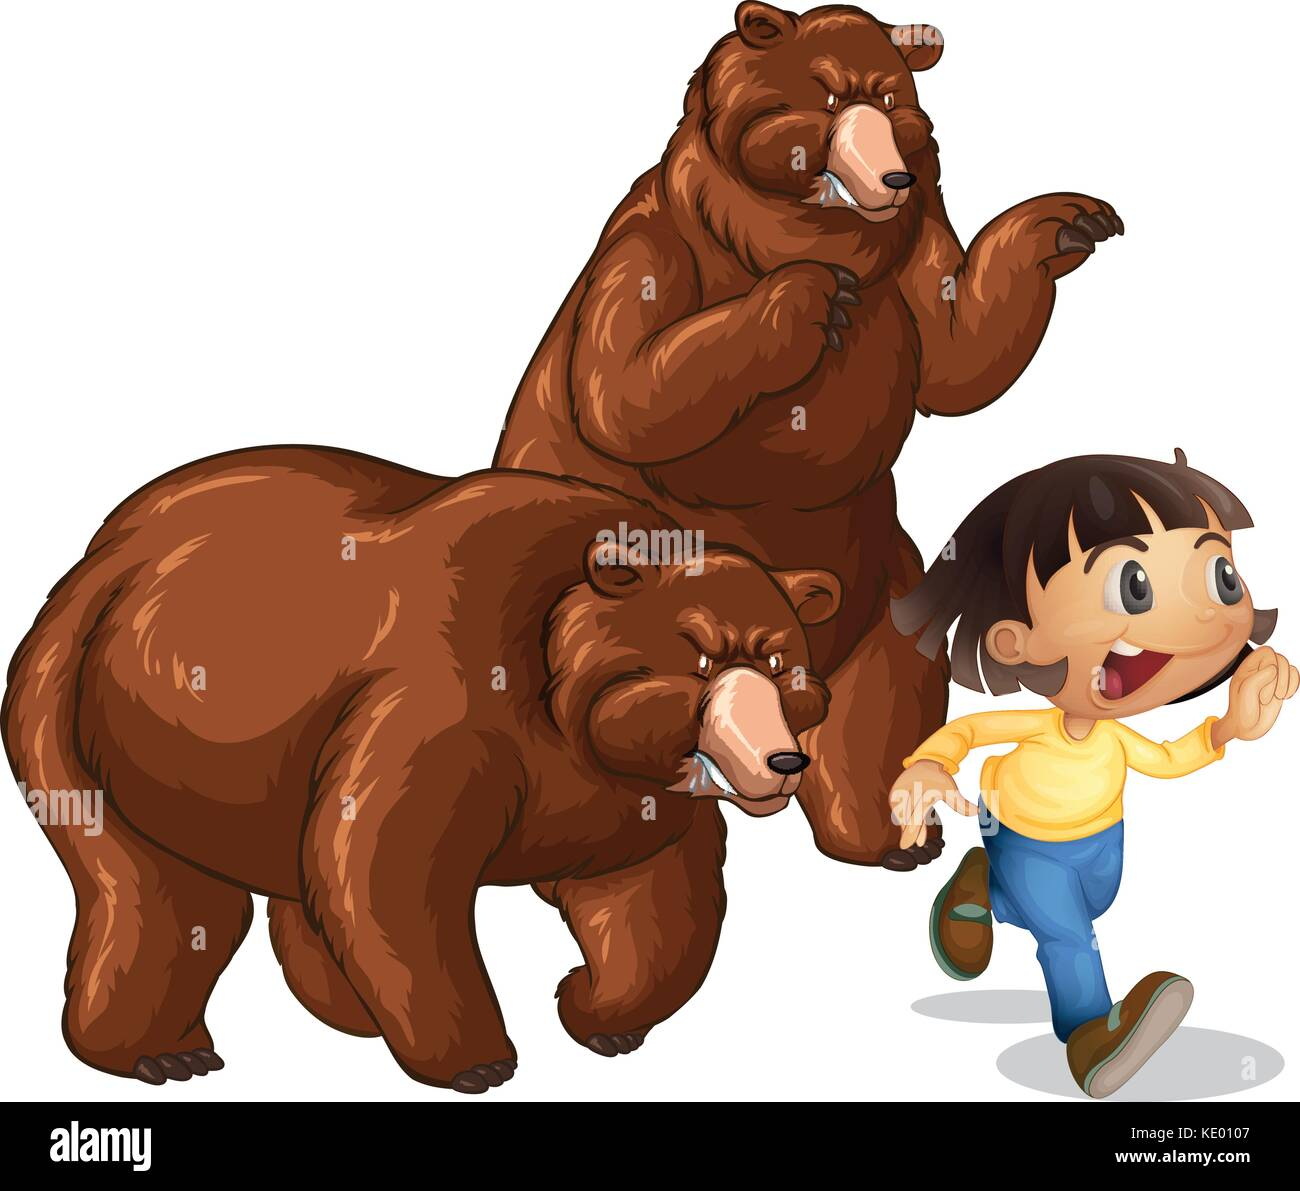 Girl running away from grizzly bears illustration Stock Vector